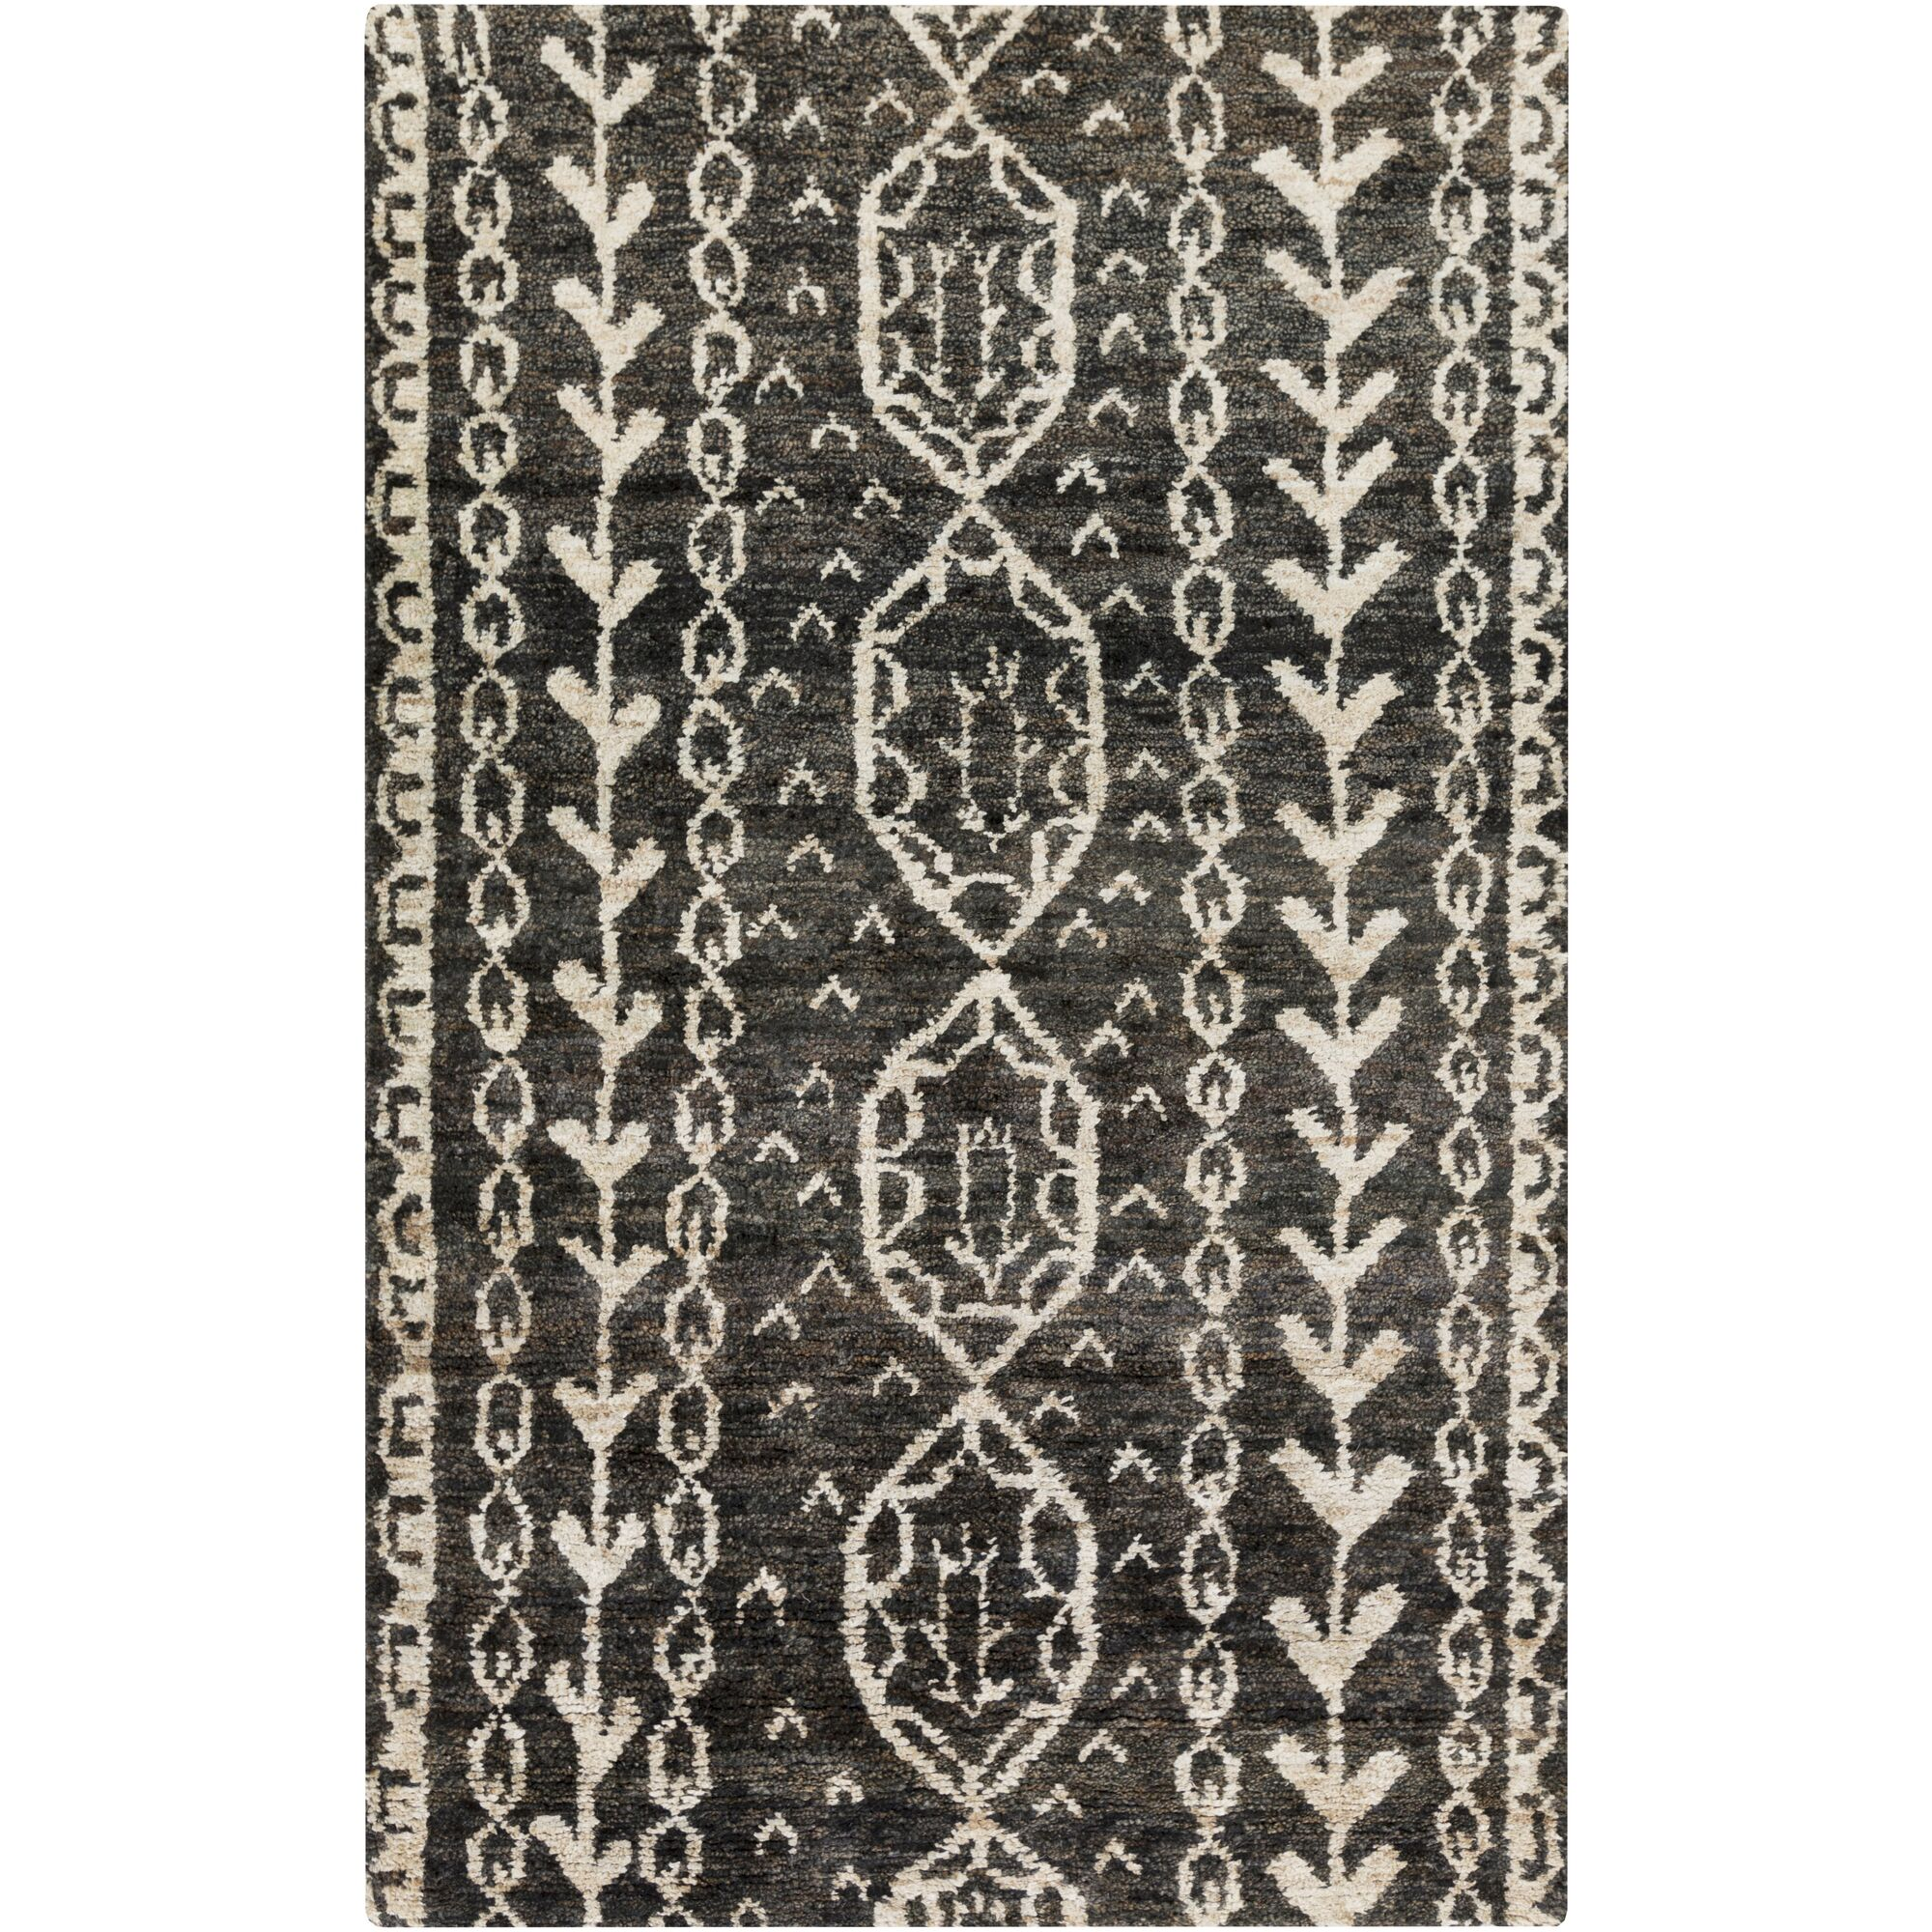 Bjorn Charcoal/Beige Area Rug Rug Size: Rectangle 2' x 3'